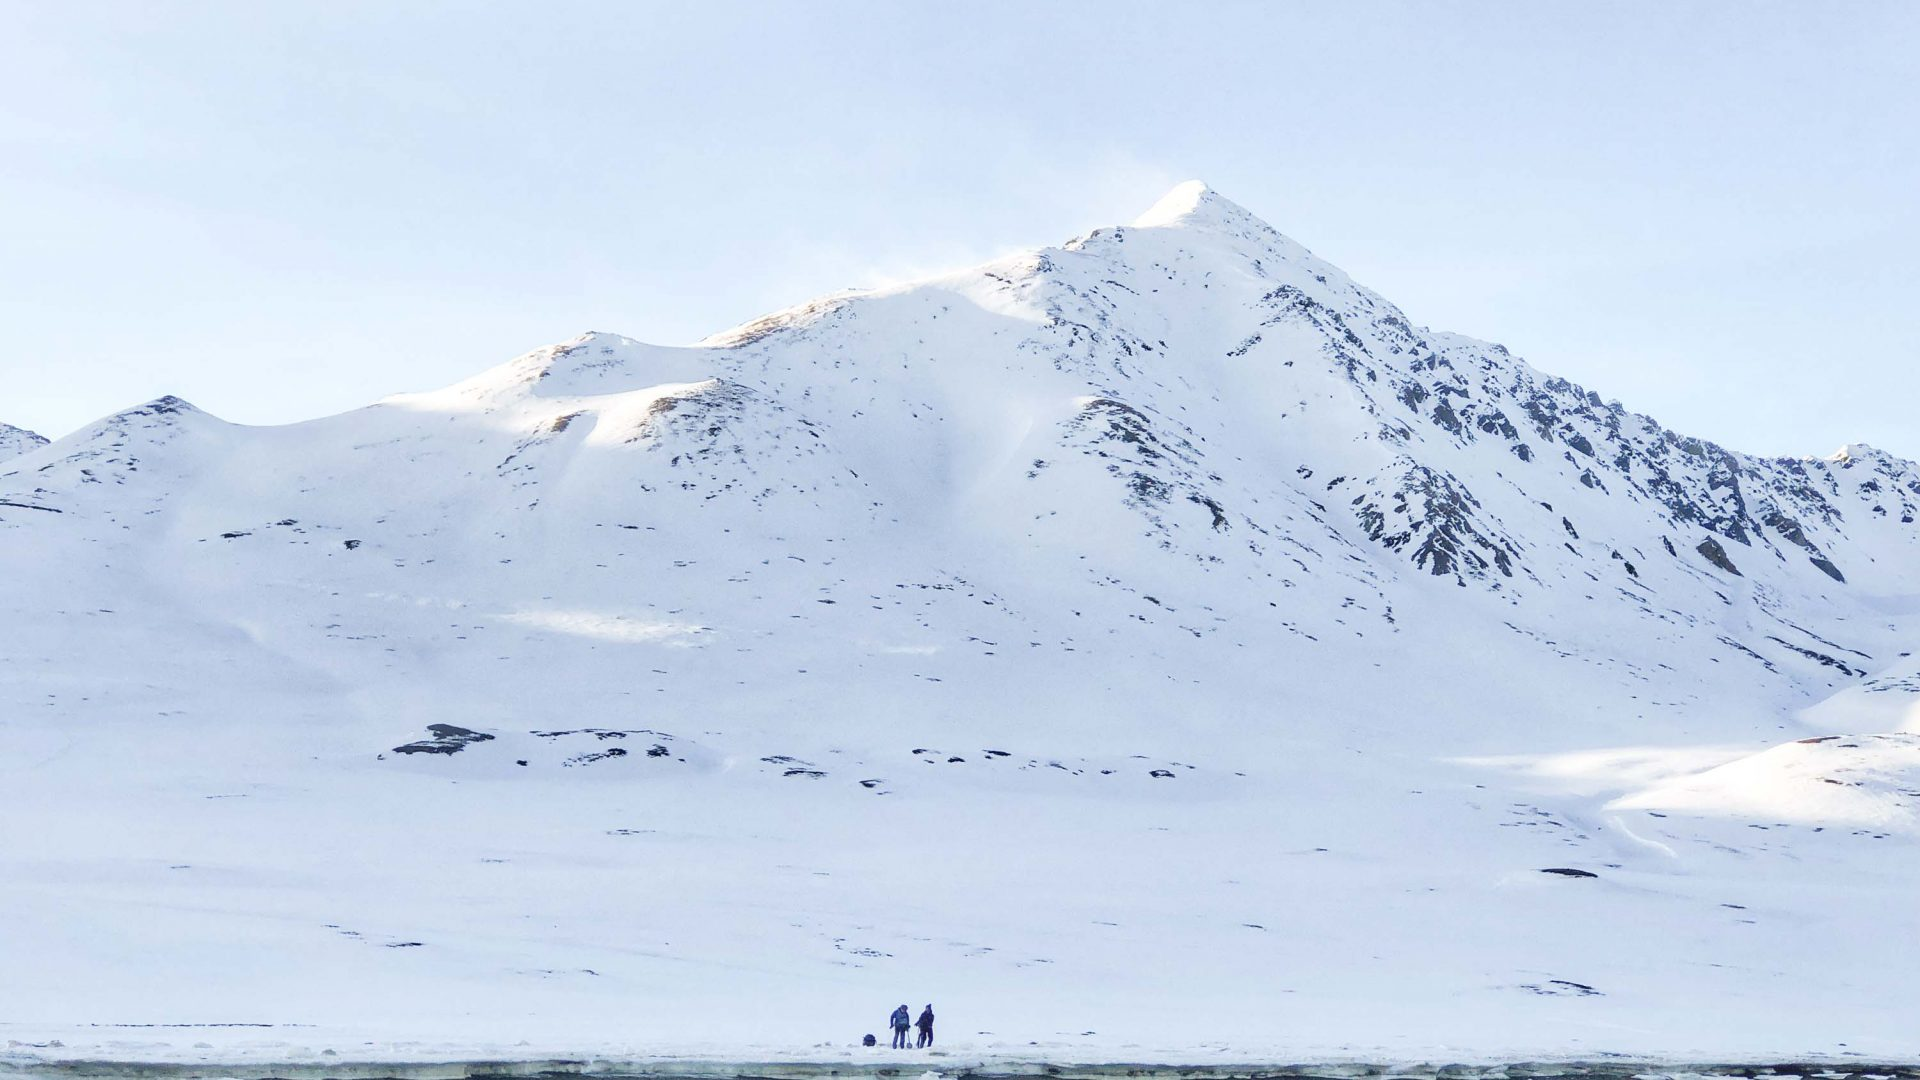 Crew waiting to be picked up from a trip onto Spitsbergen island.